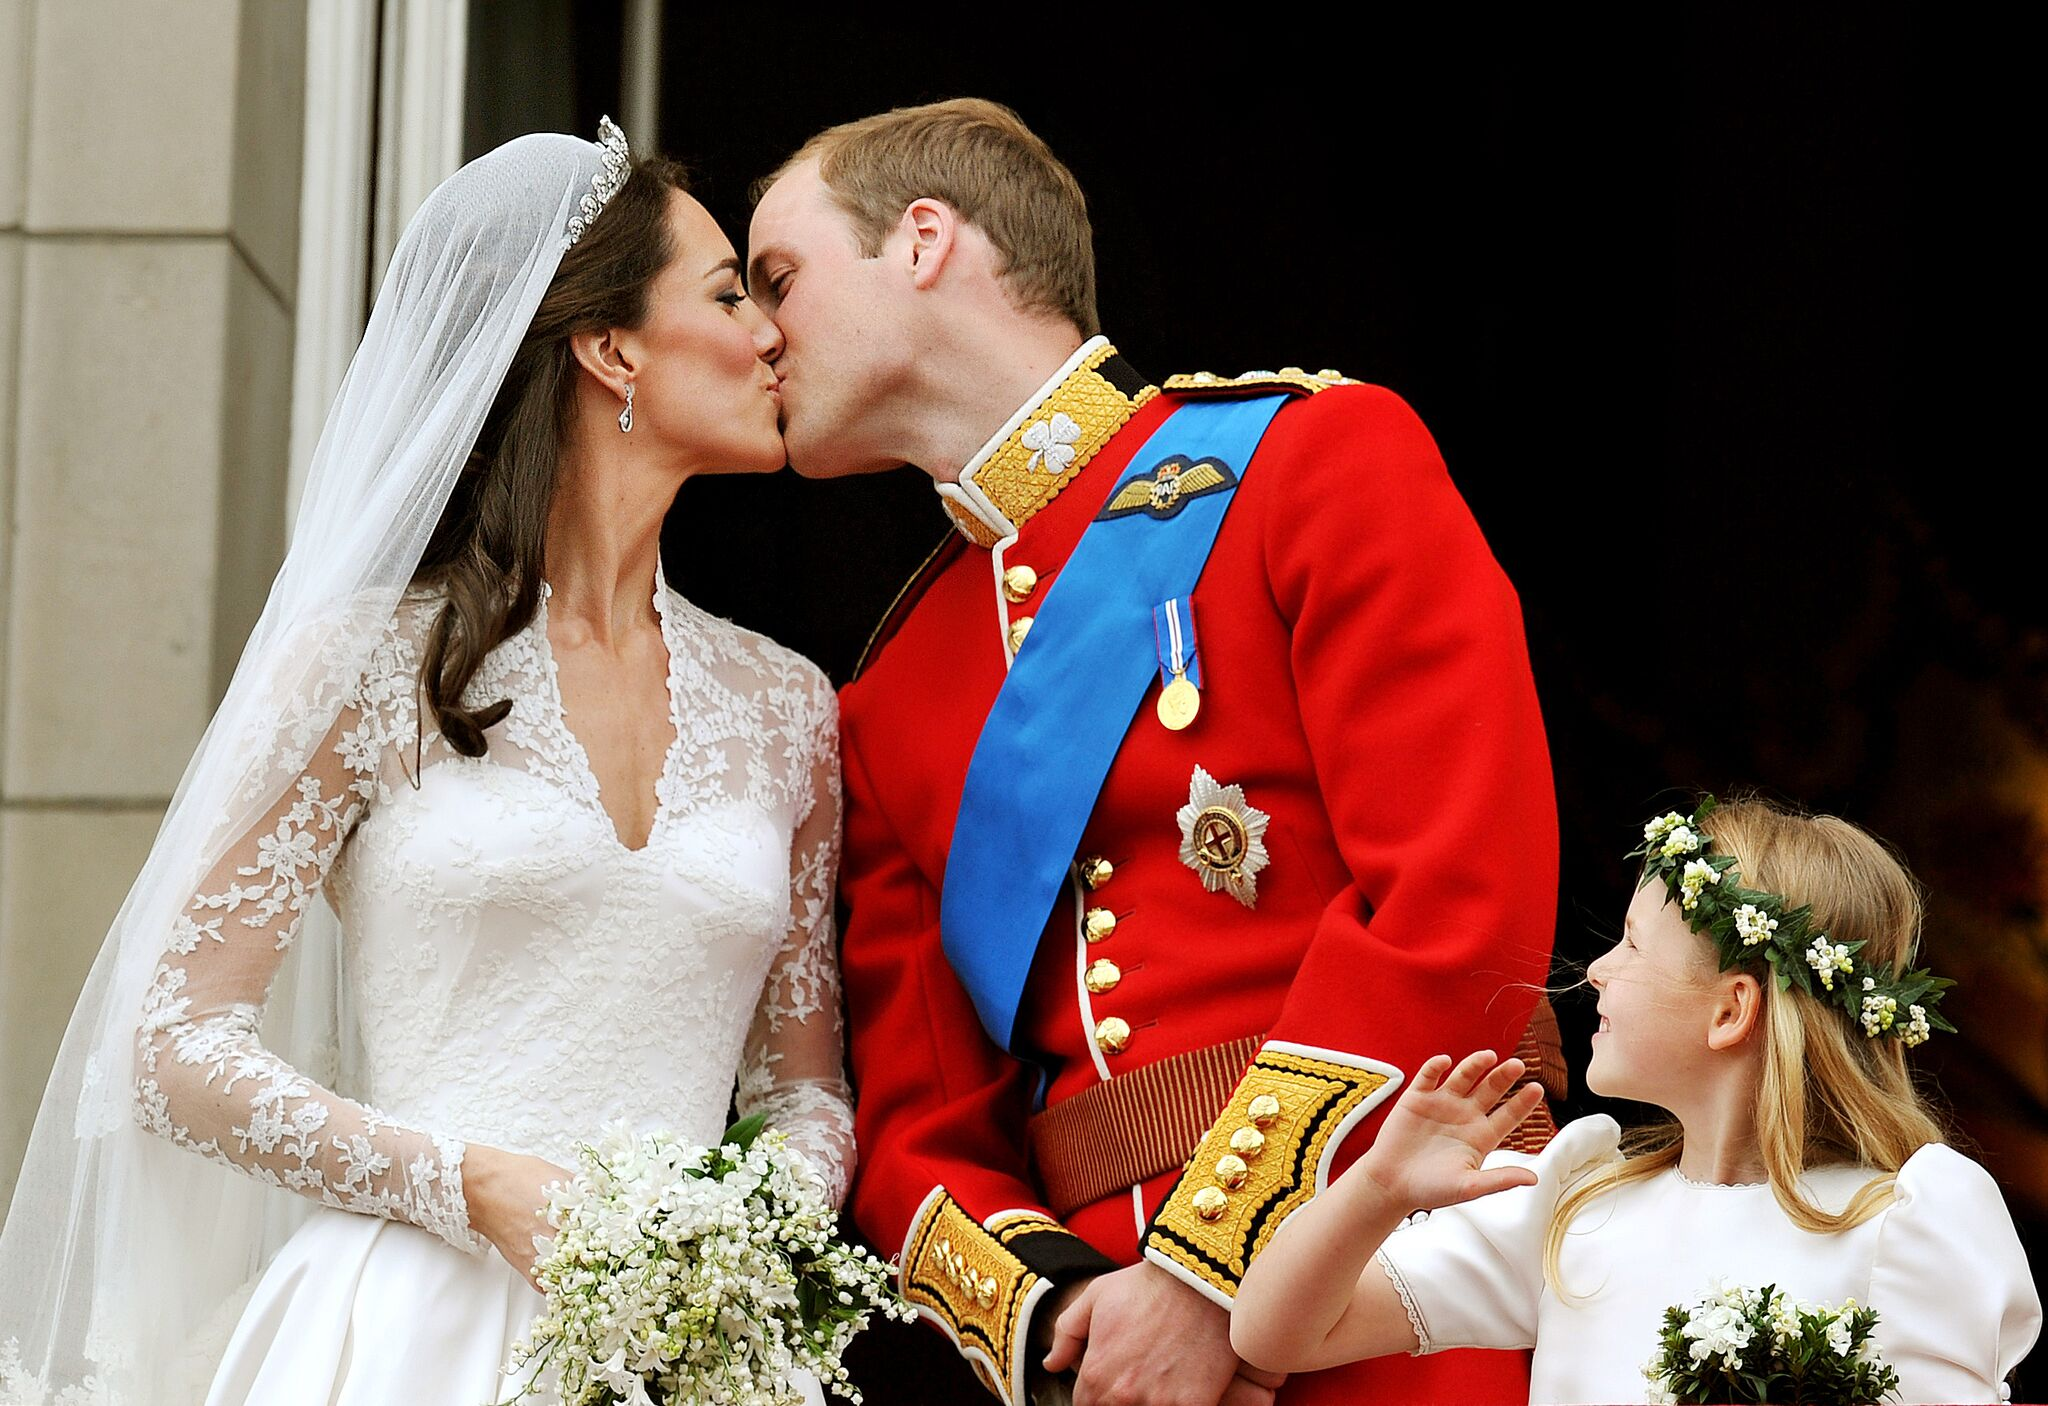 Prince William and Kate Middleton's kiss on the balcony on their wedding day | Getty Images